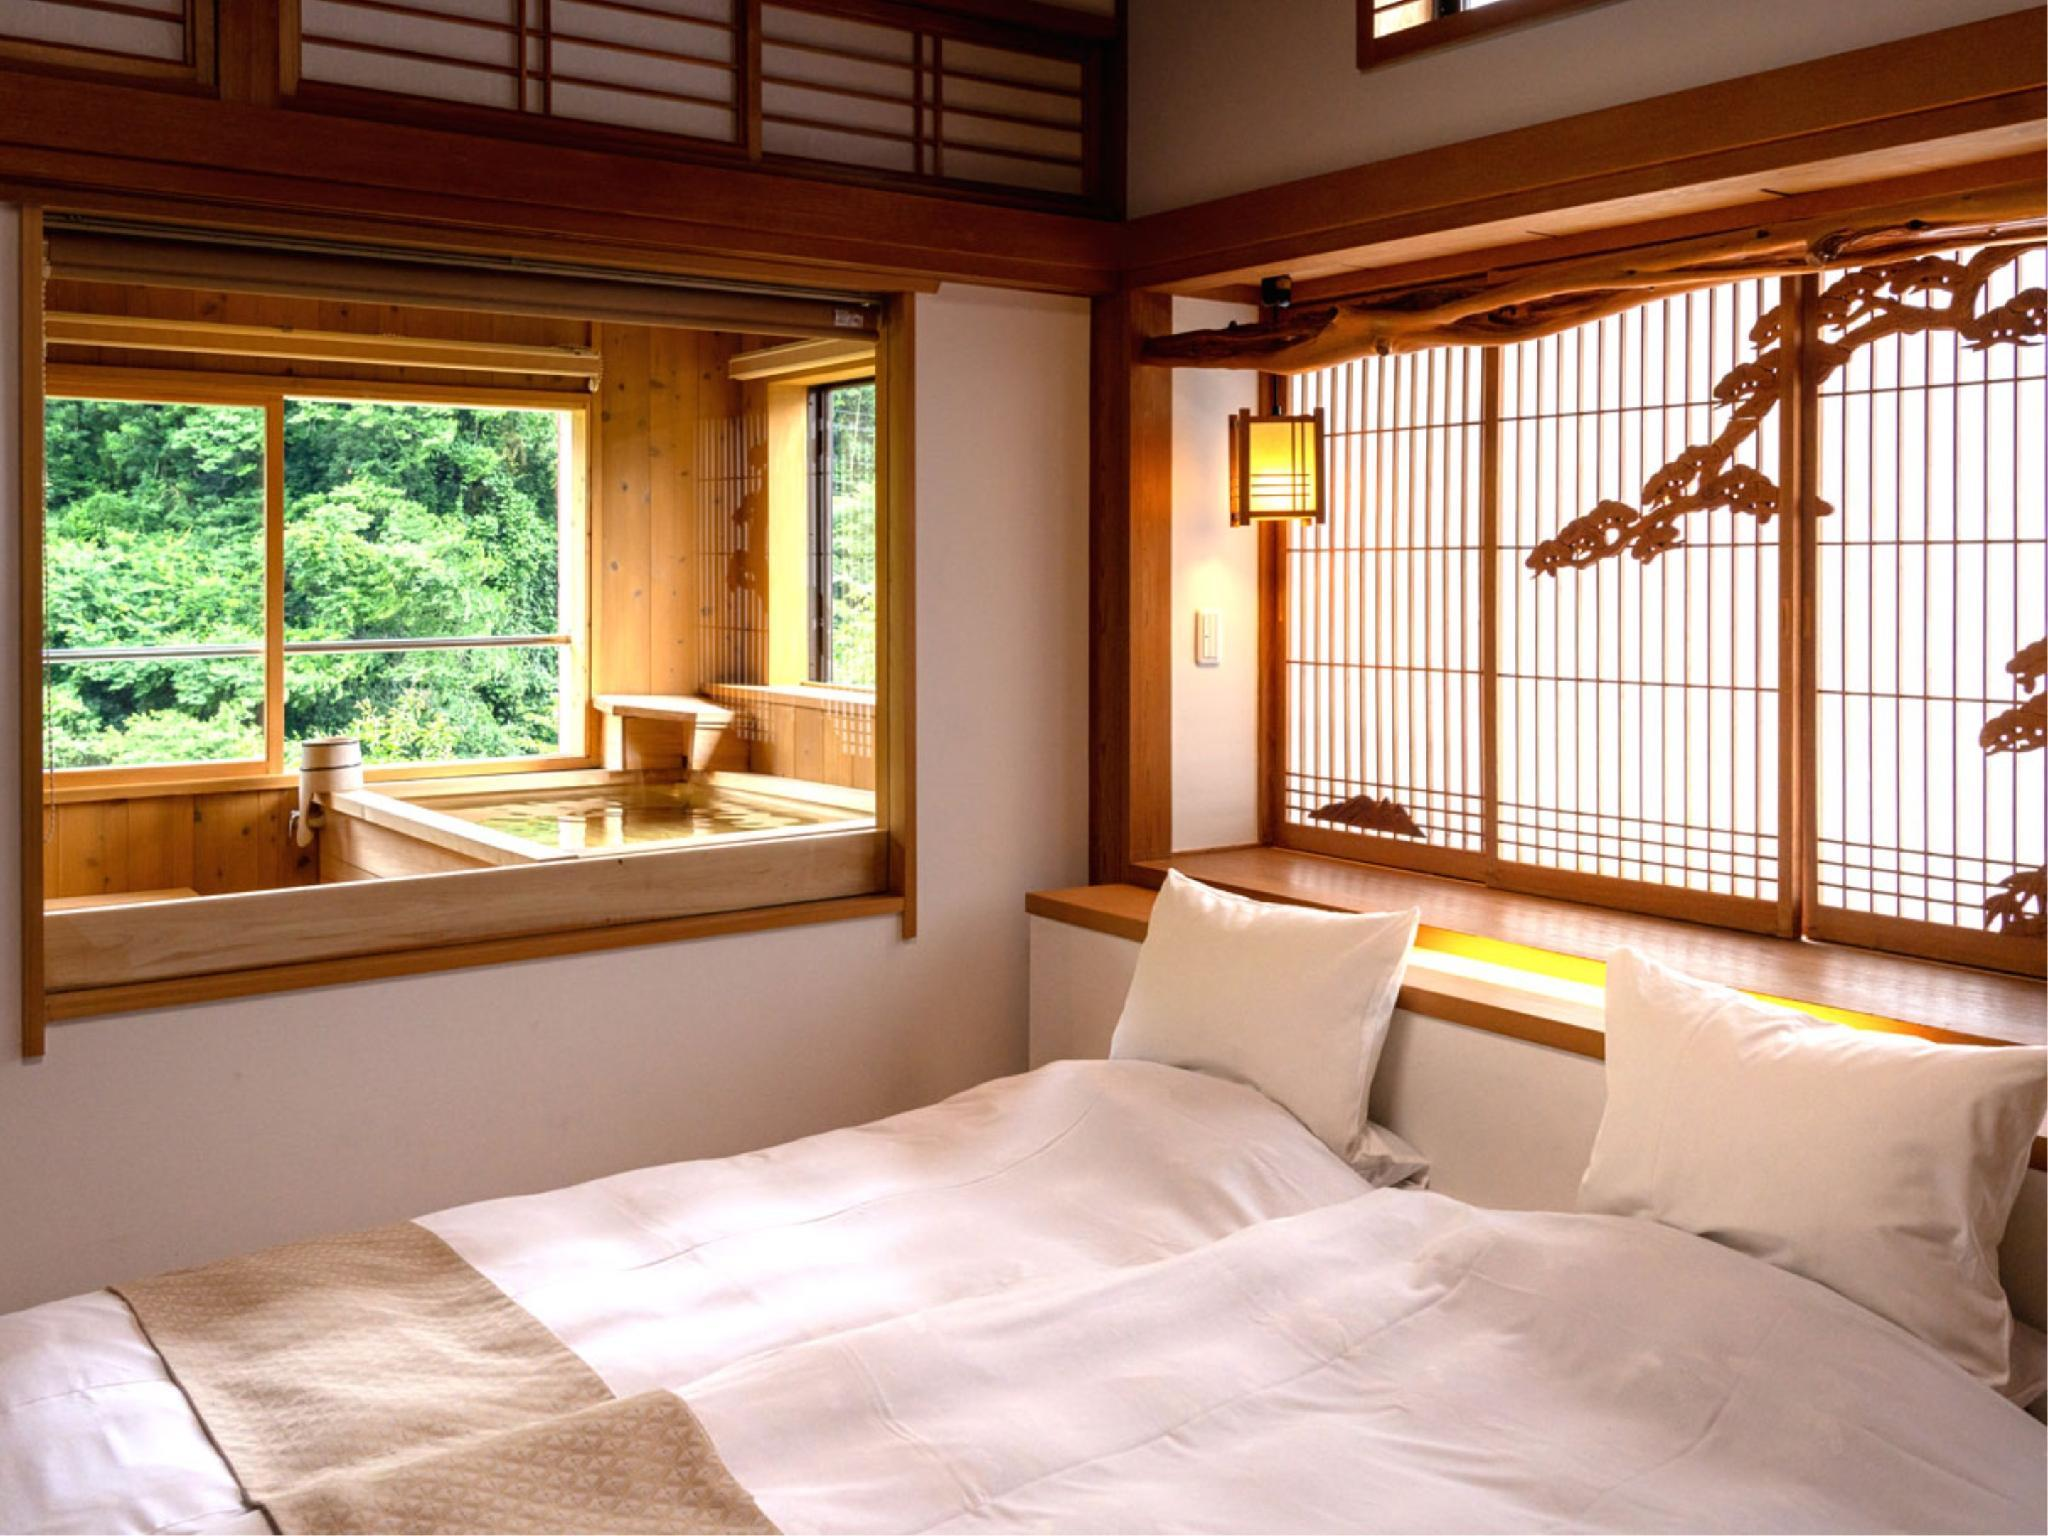 다다미 침대 객실(별관/귀빈실/KAME/전망탕) (Japanese/Western-style Suite with Scenic View Bath (Kame Type, Annex))